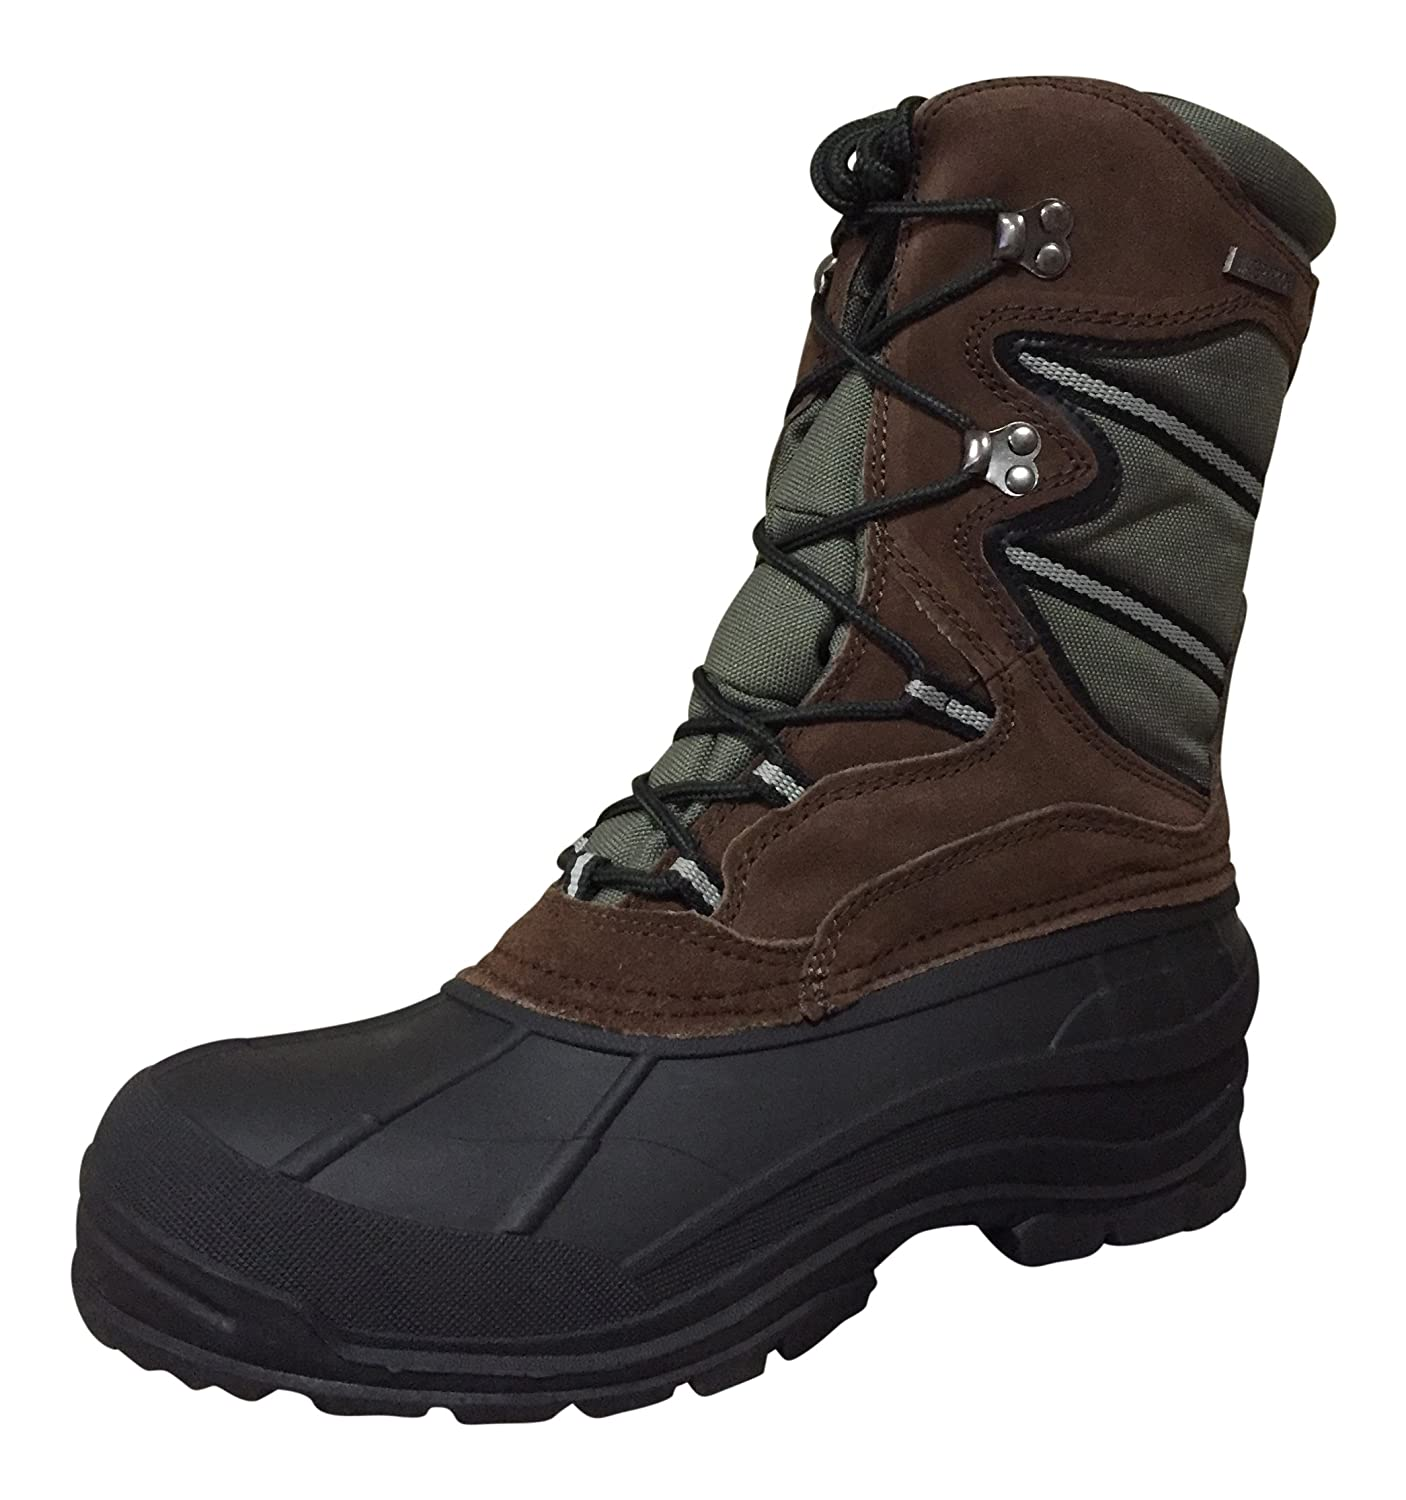 Climate X Mens YC9 Winter Boots